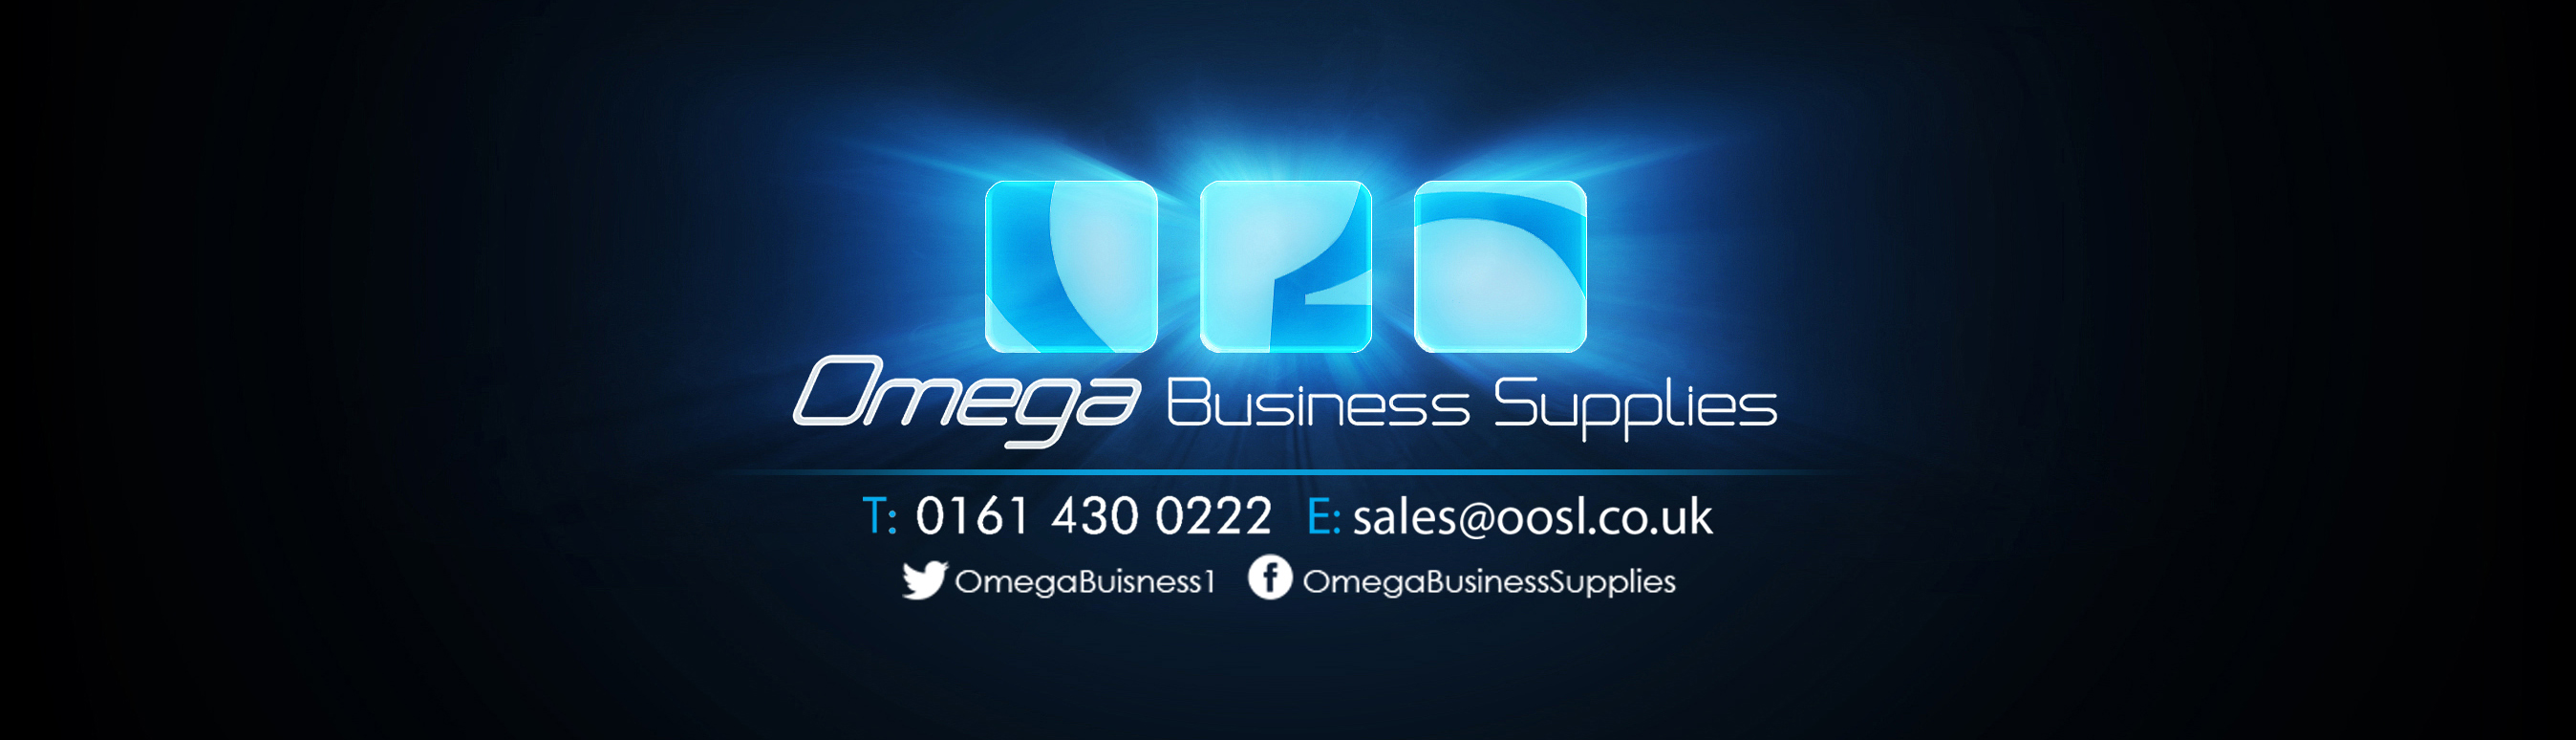 Omega Business Supplies